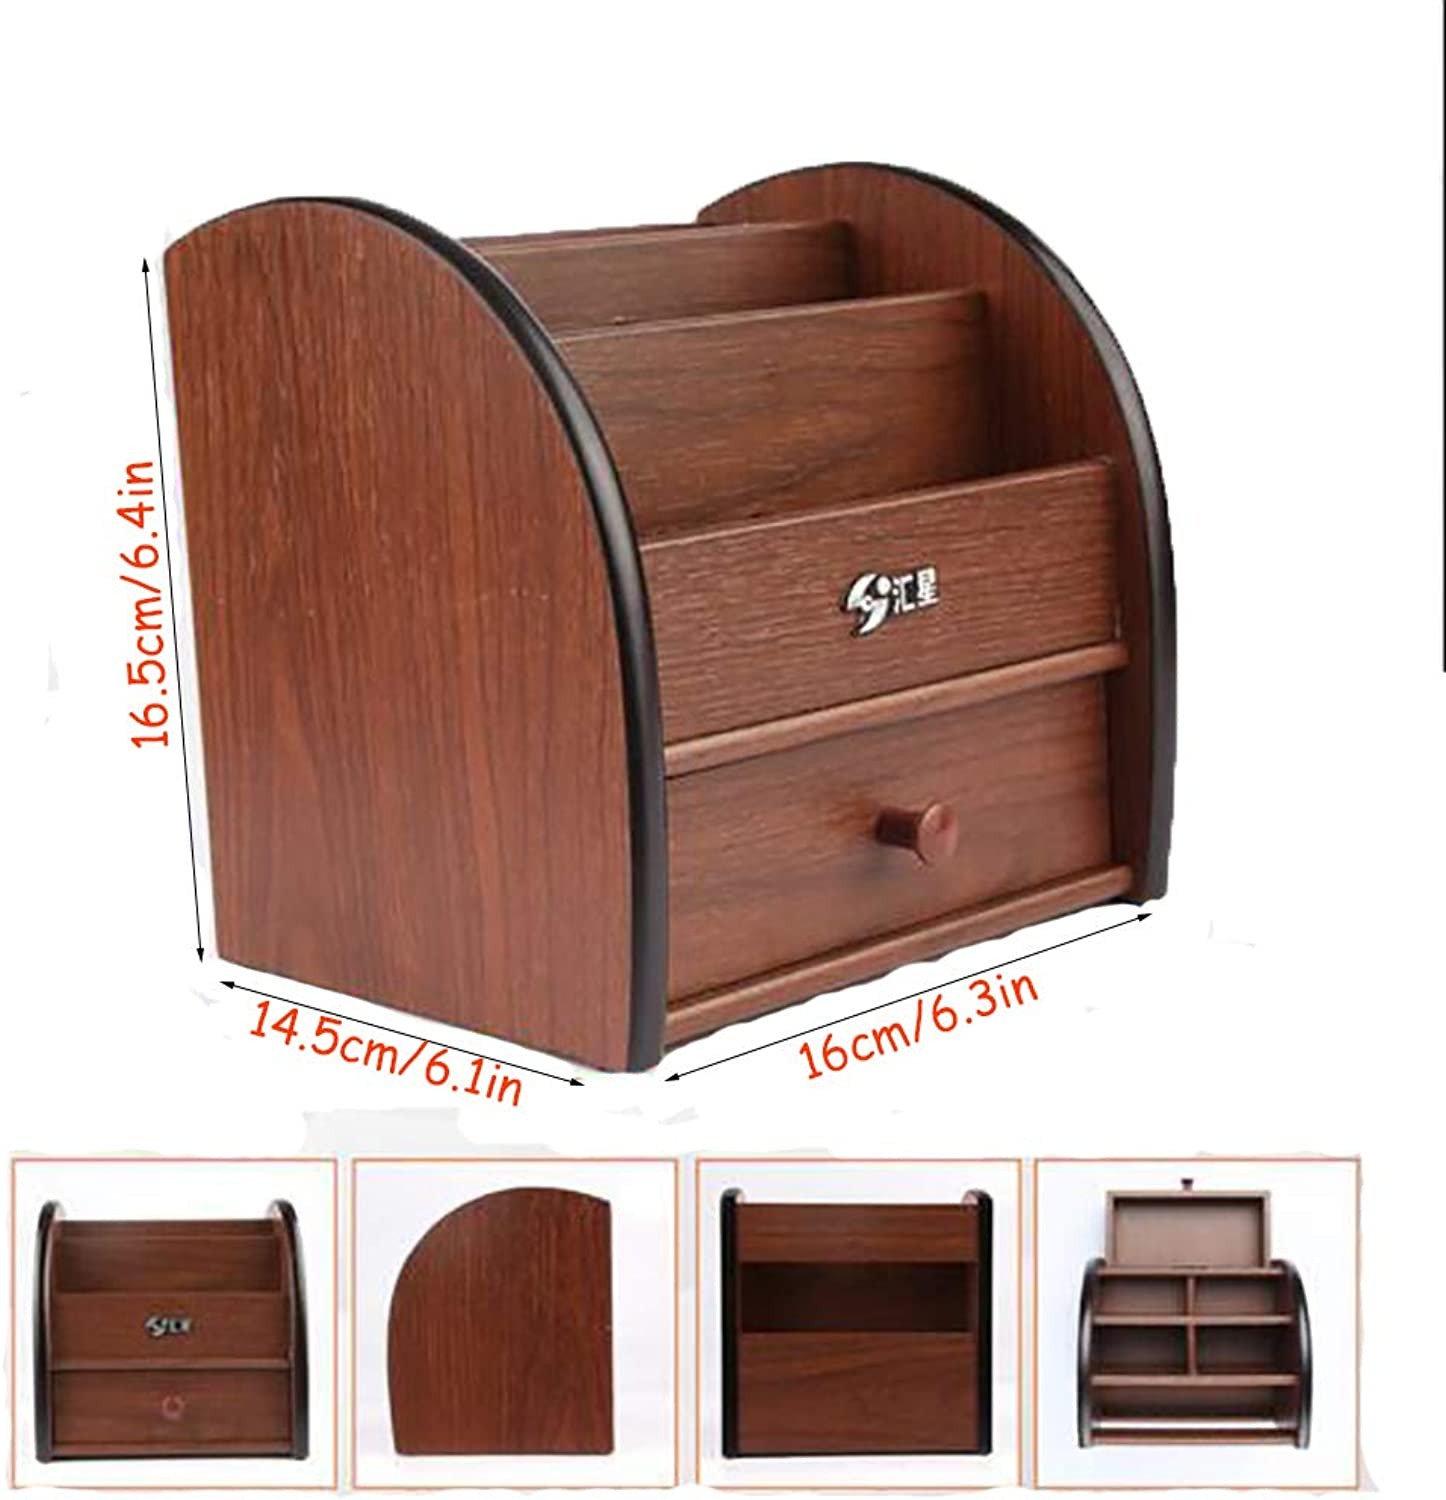 Wood Pen Holder with Drawer, Multifunction Durable Mobile Phone Sundries Rack Remote Control -B 16x14x16cm(6x6x6)